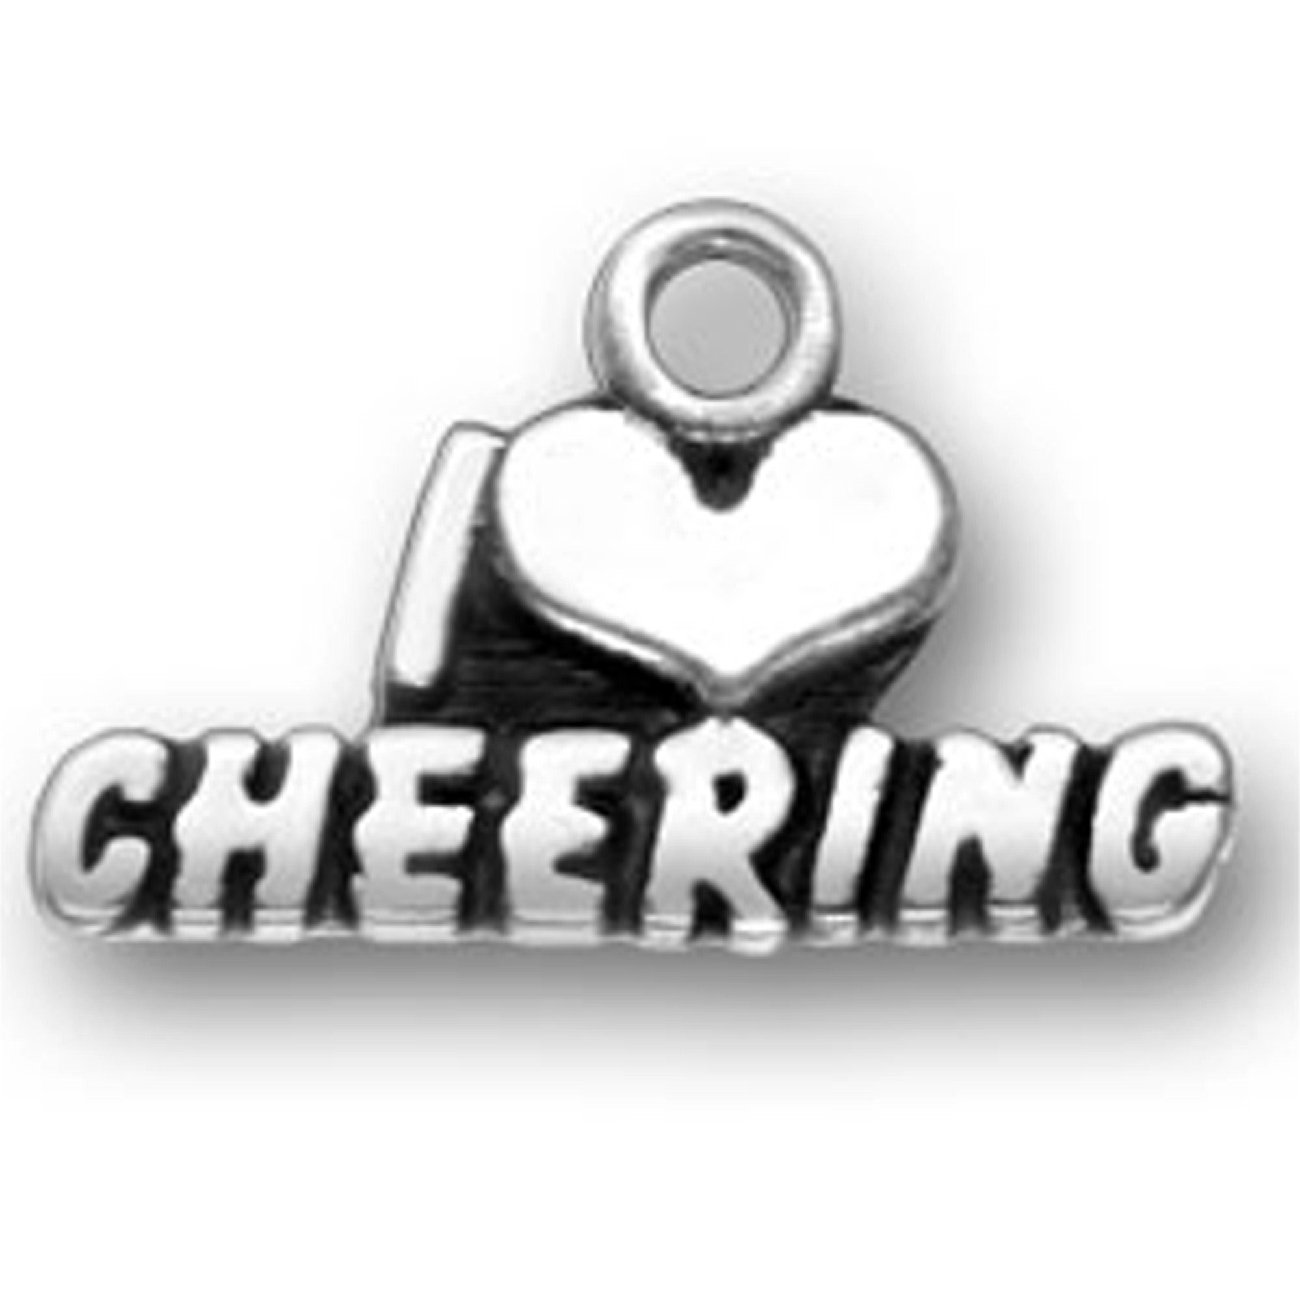 Sterling Silver 7 4.5mm Charm Bracelet With Attached I HEART CHEERING Sports Word Charm